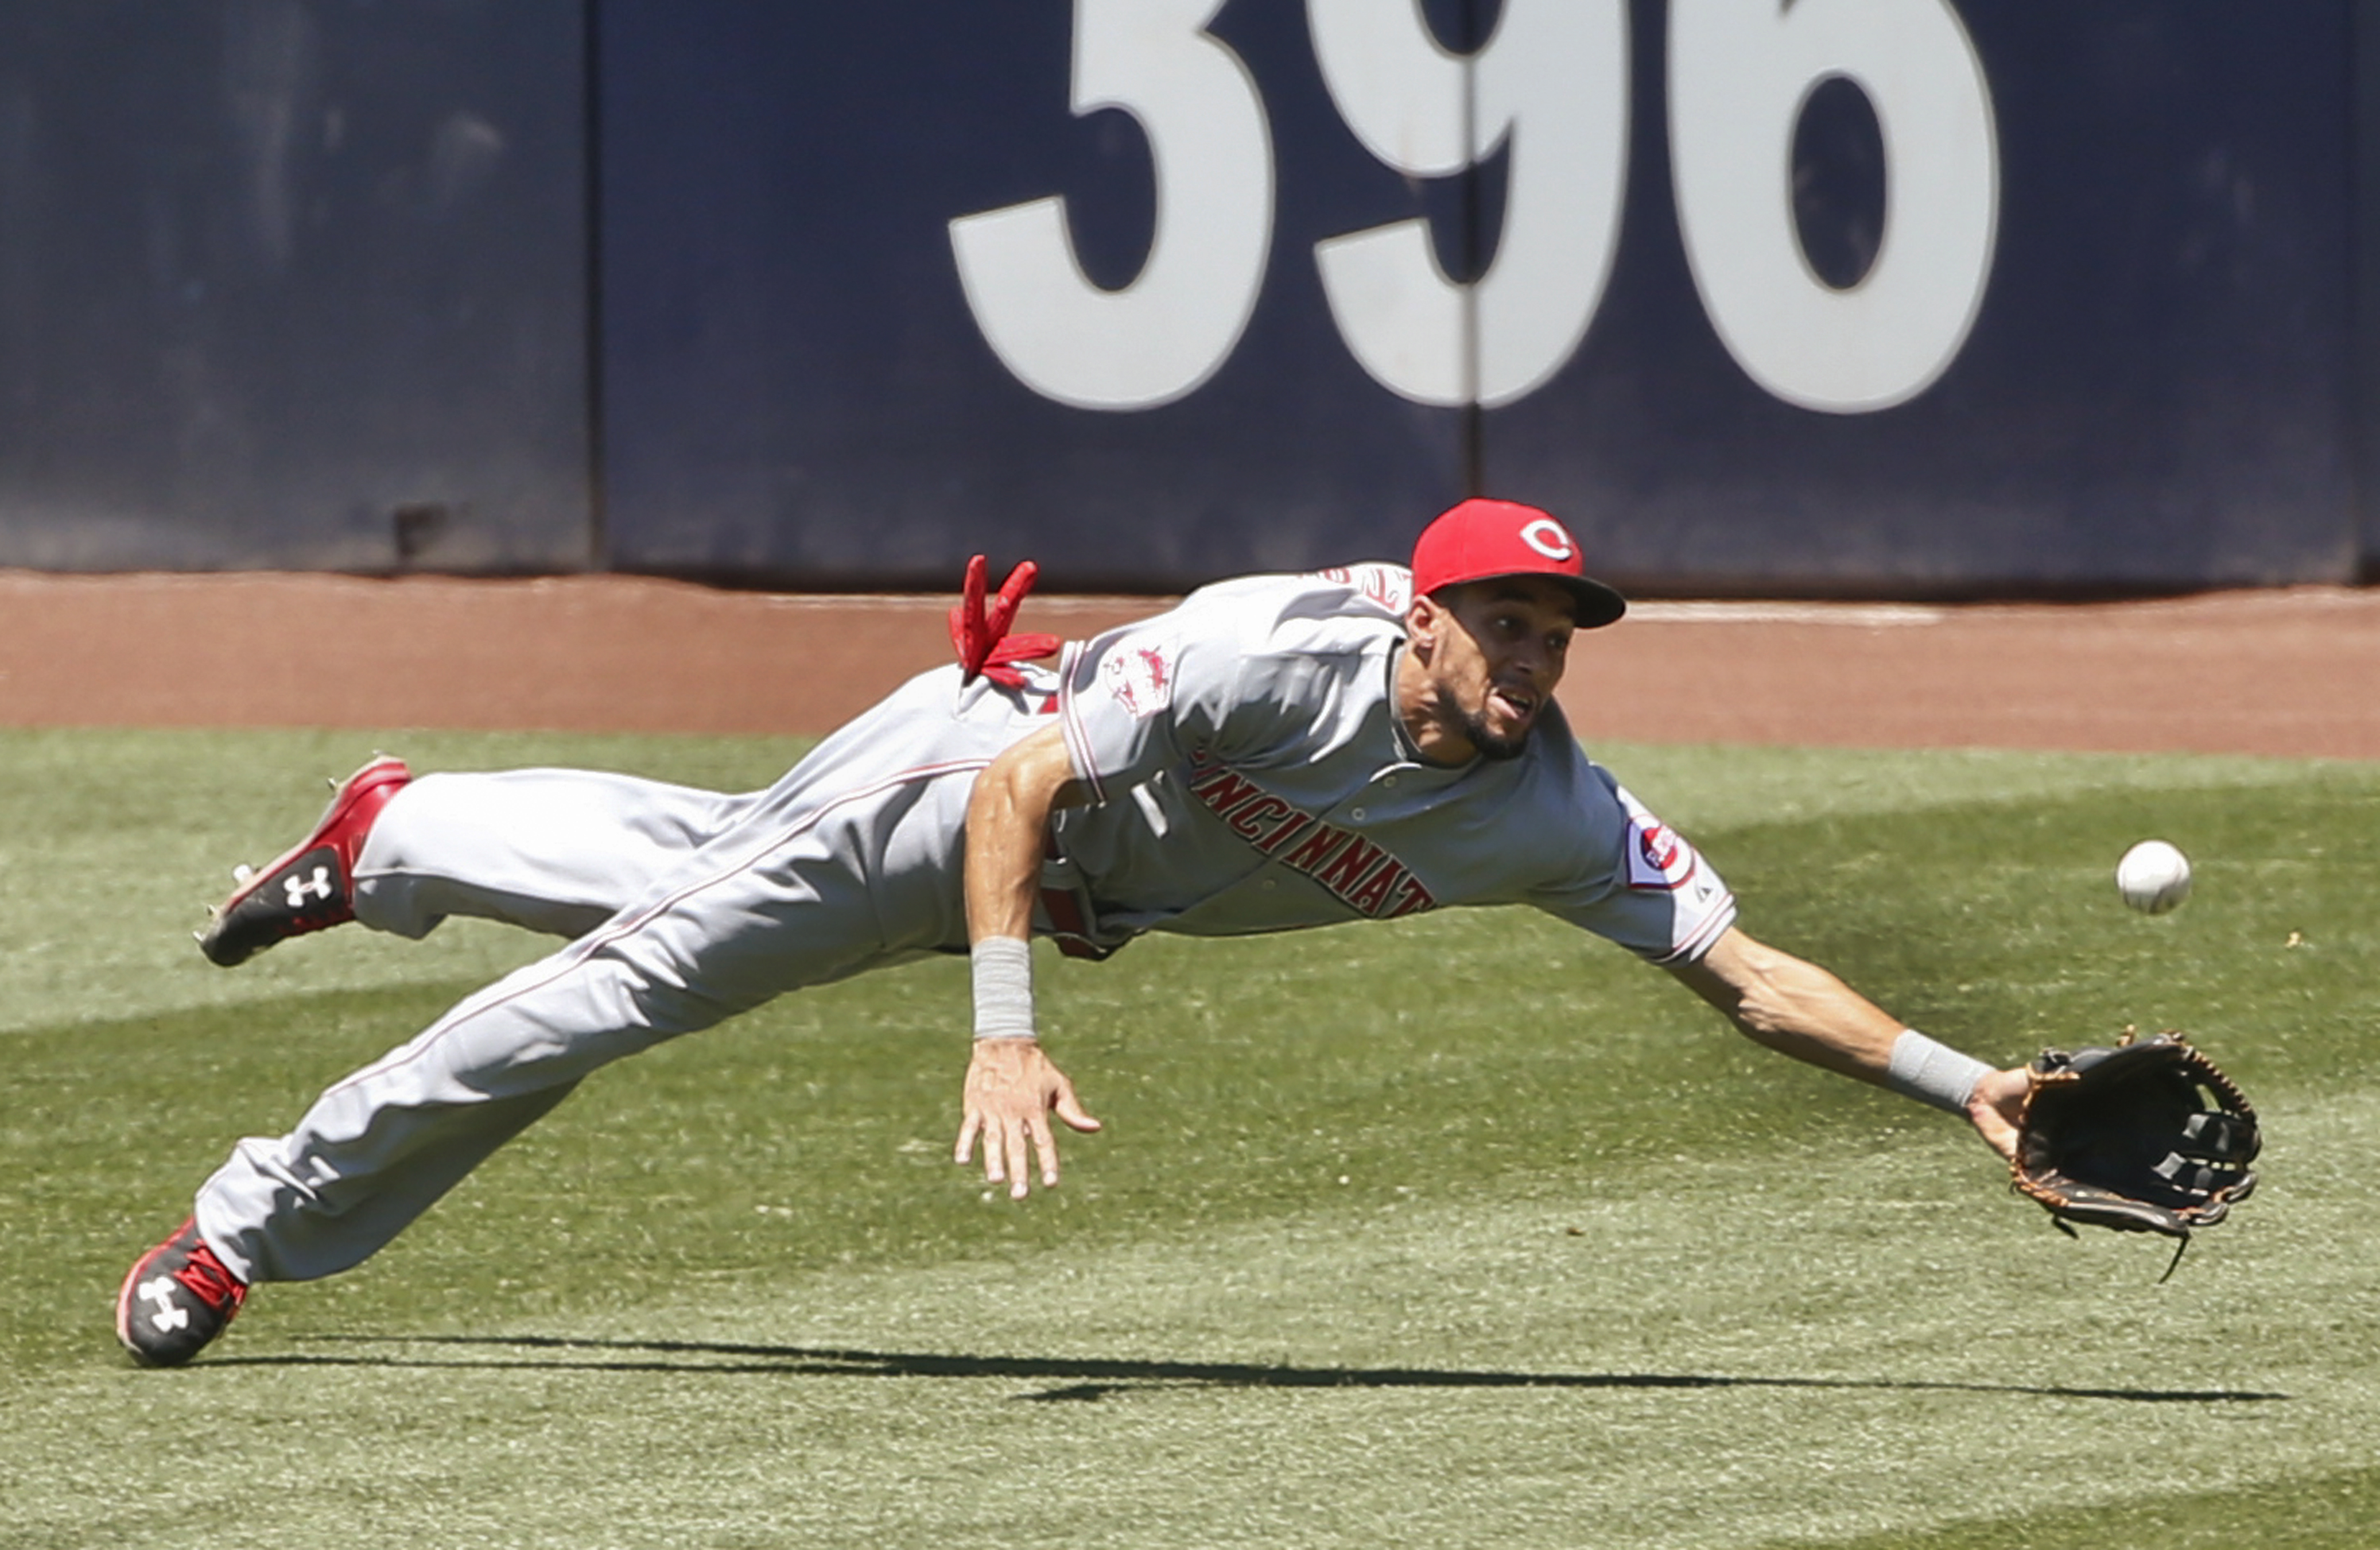 Cincinnati Reds center fielder Billy Hamilton misses on a diving attempt at a drive hit by San Diego Padres' Derek Norris during the first inning of a baseball game Wednesday, Aug. 12, 2015, in San Diego. Norris doubled on the play. (AP Photo/Lenny Ignelz